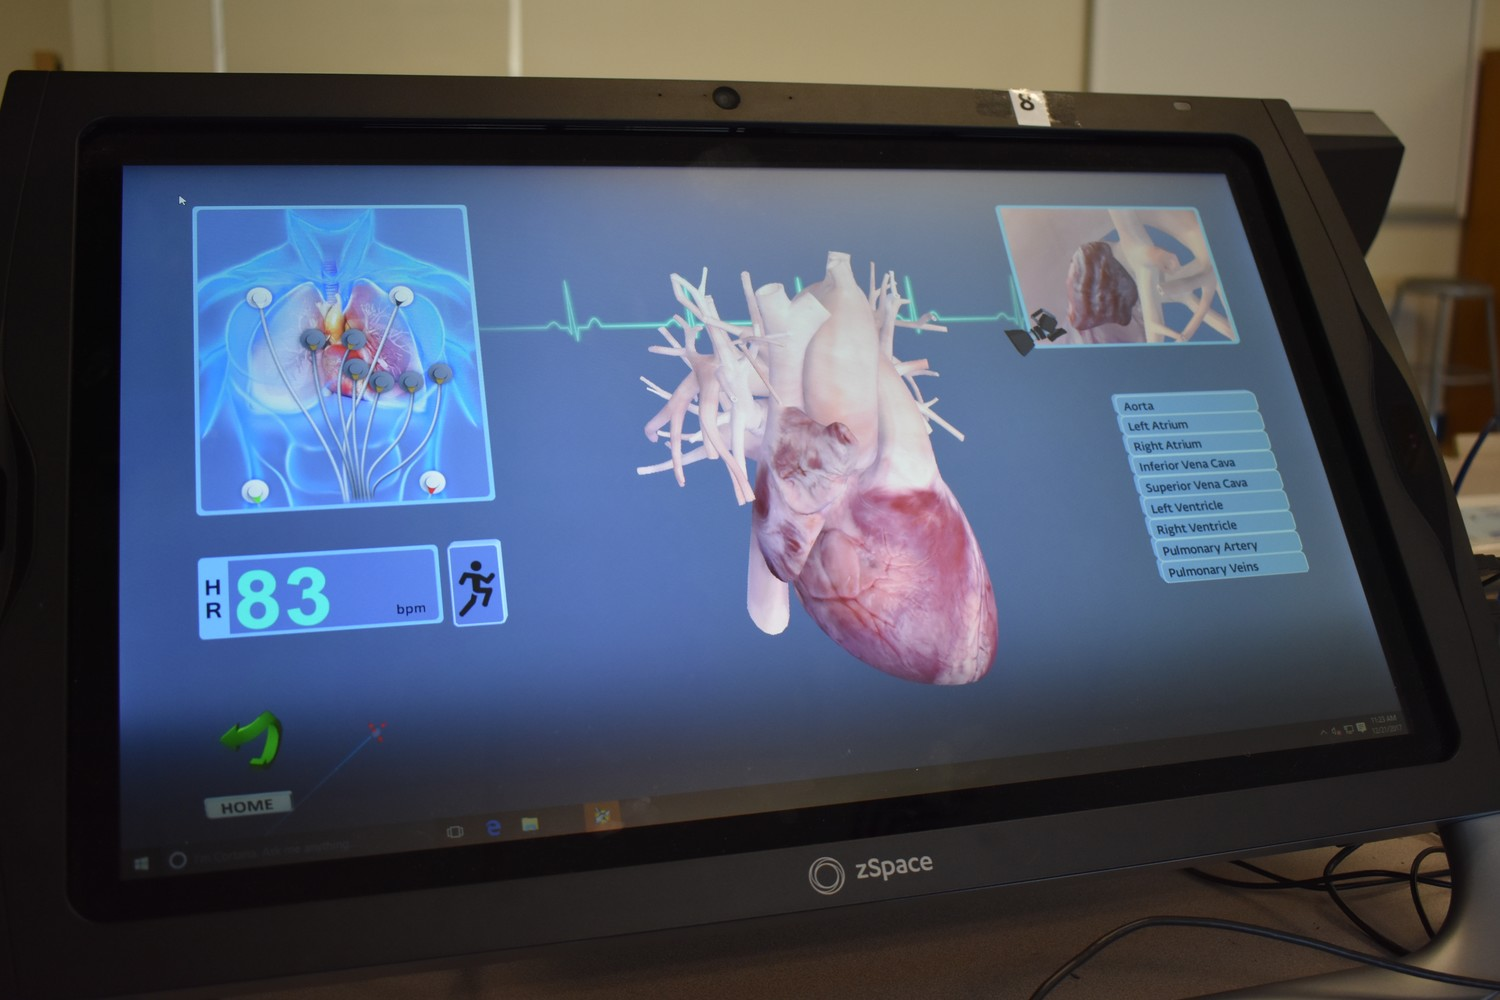 Users can virtually grab a beating heart out of the zSpace screen.